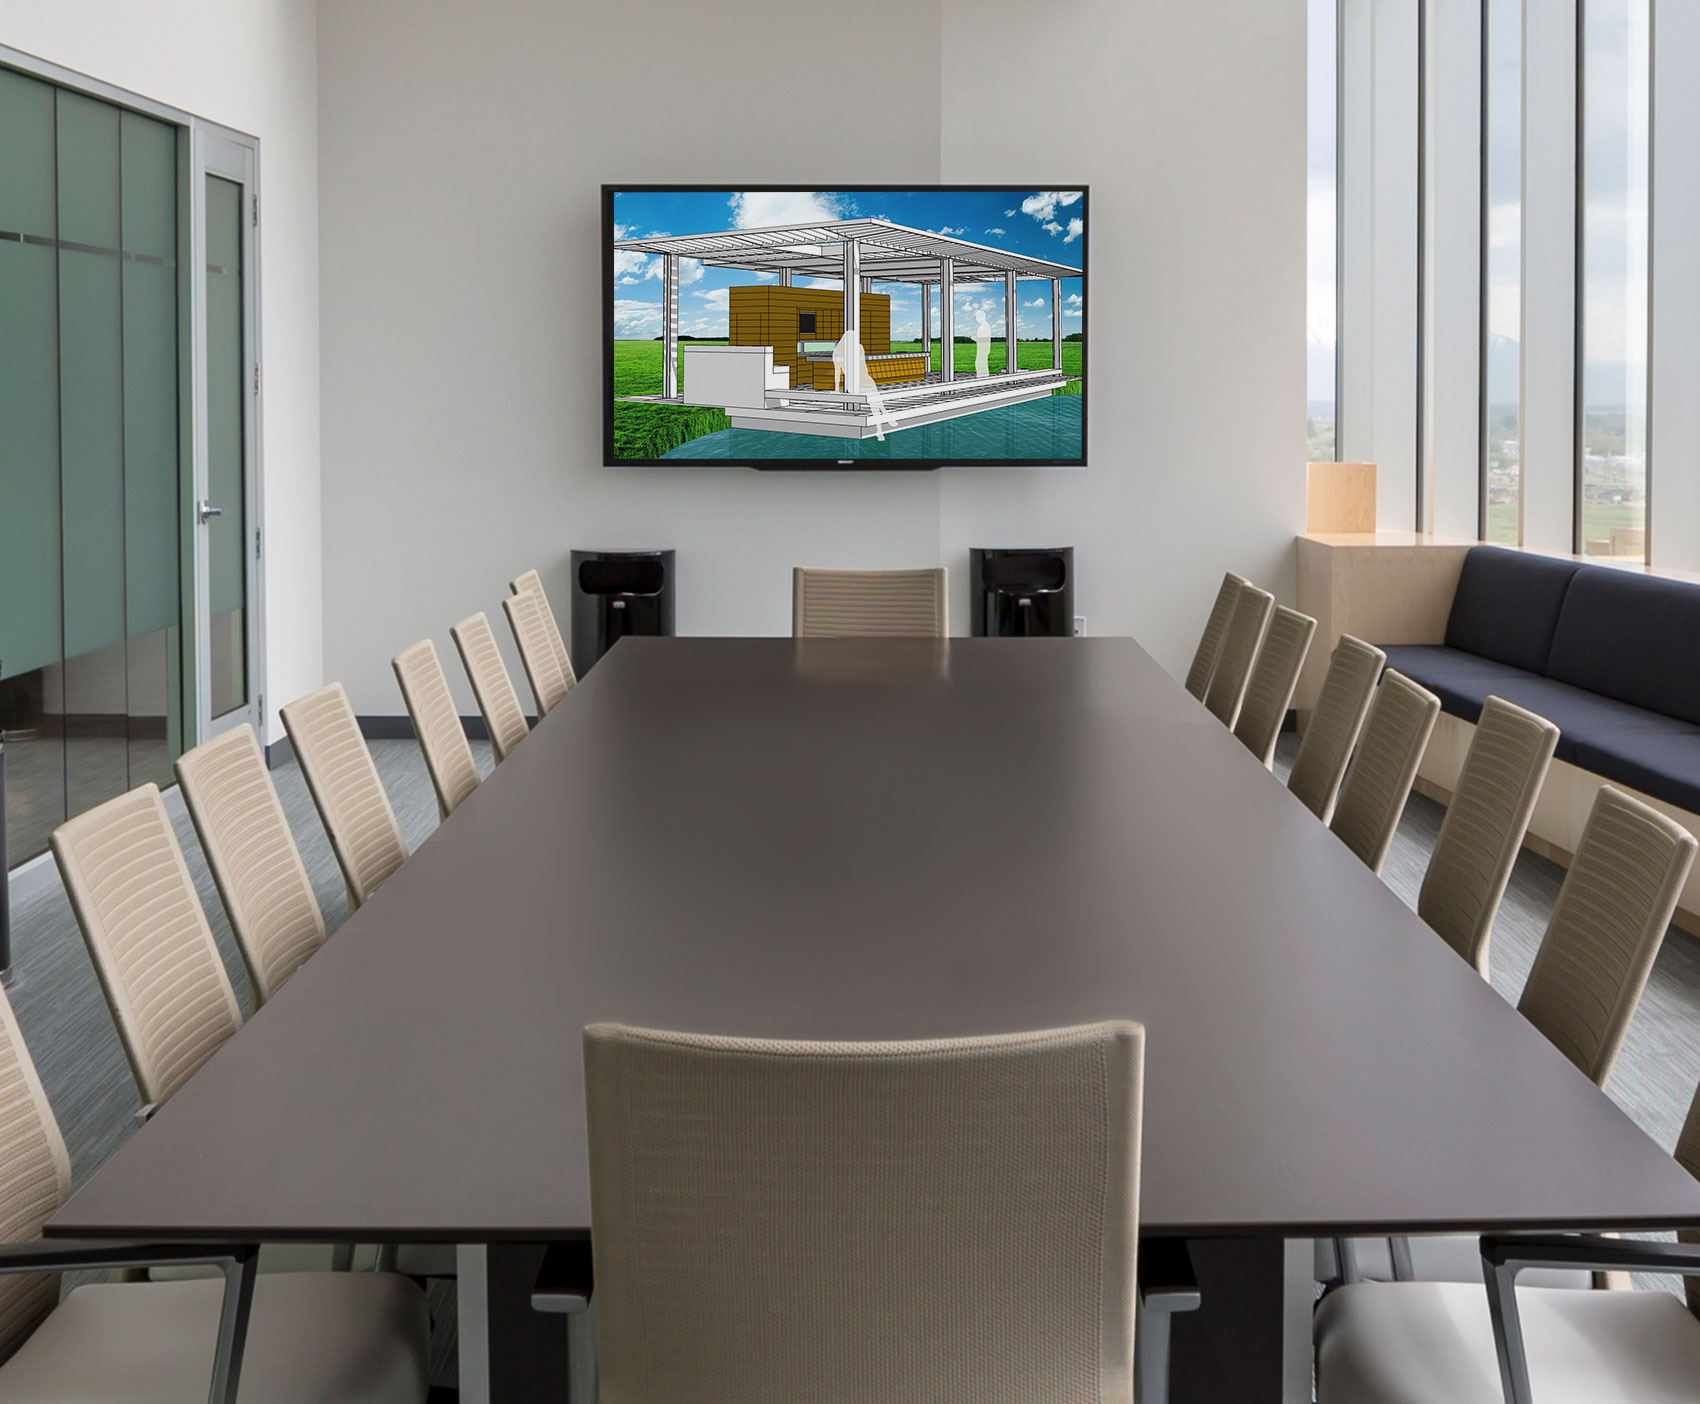 Image of a rendering displayed on a conference room monitor that I created while working at Gray Design Group